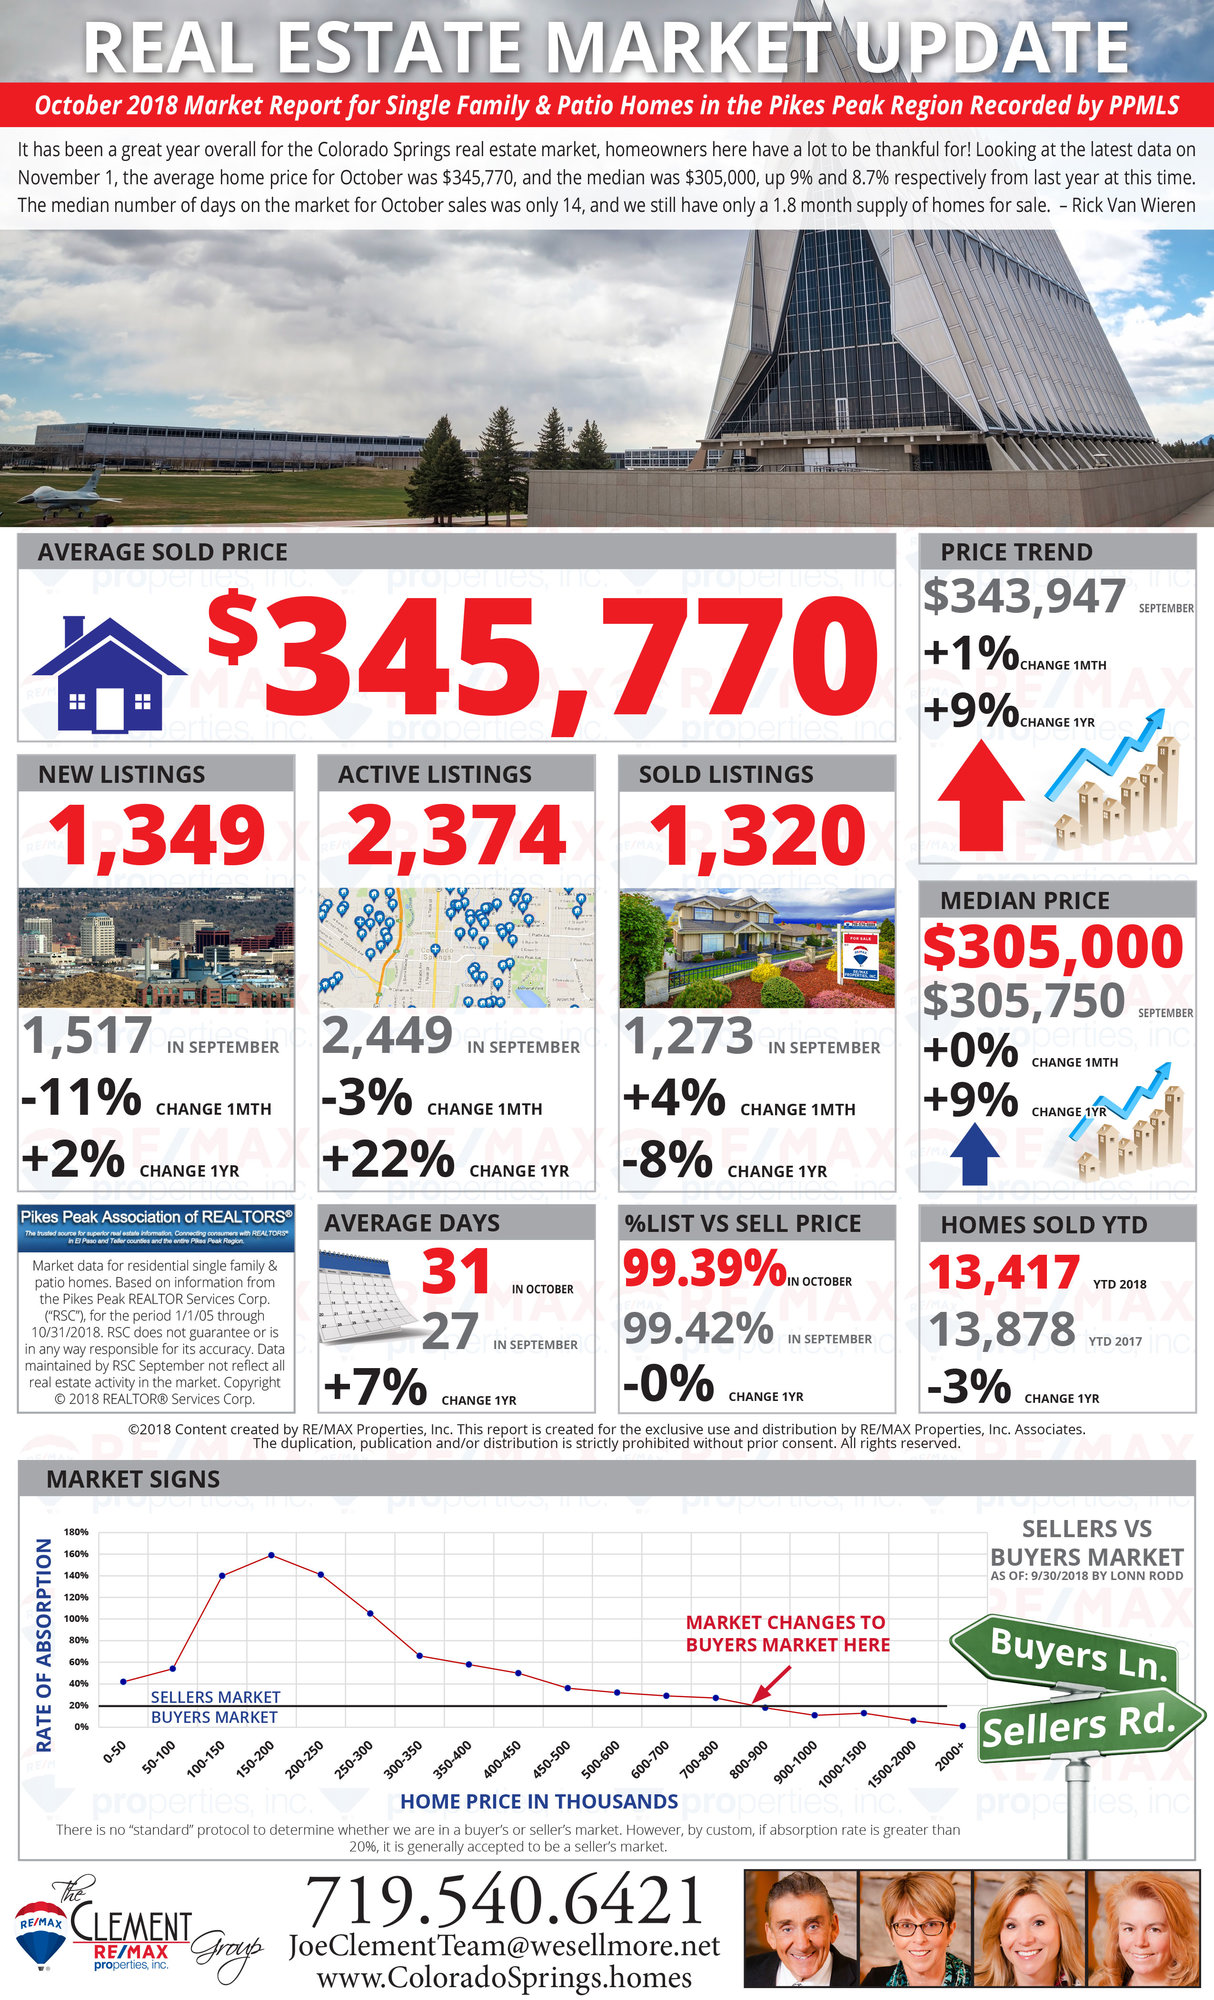 October 2018 Market Update - Colorado Springs Real Estate - Joe Clement Team